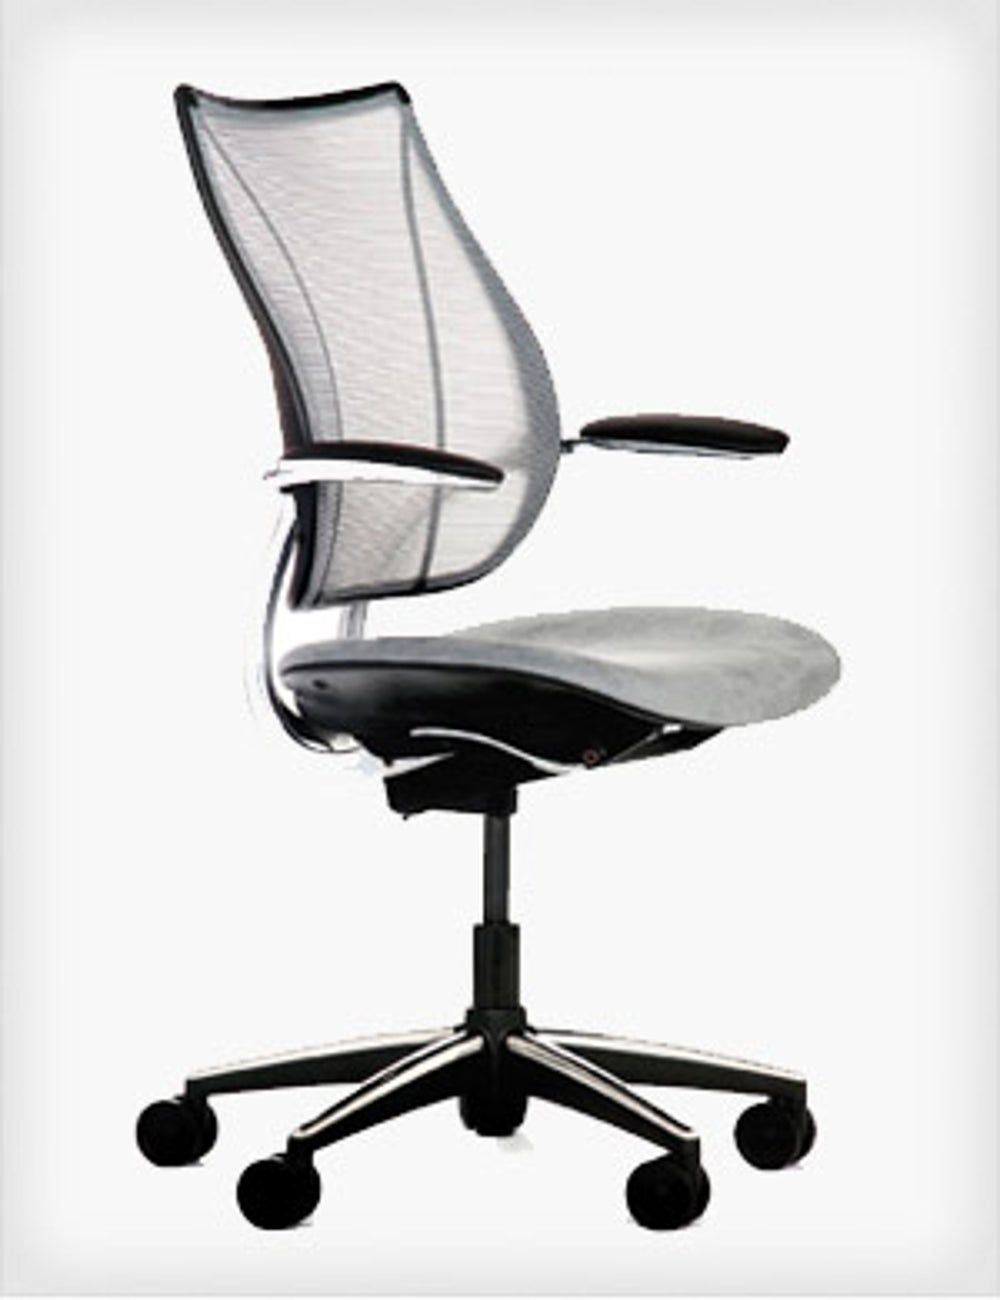 Chairs for the Growing Business